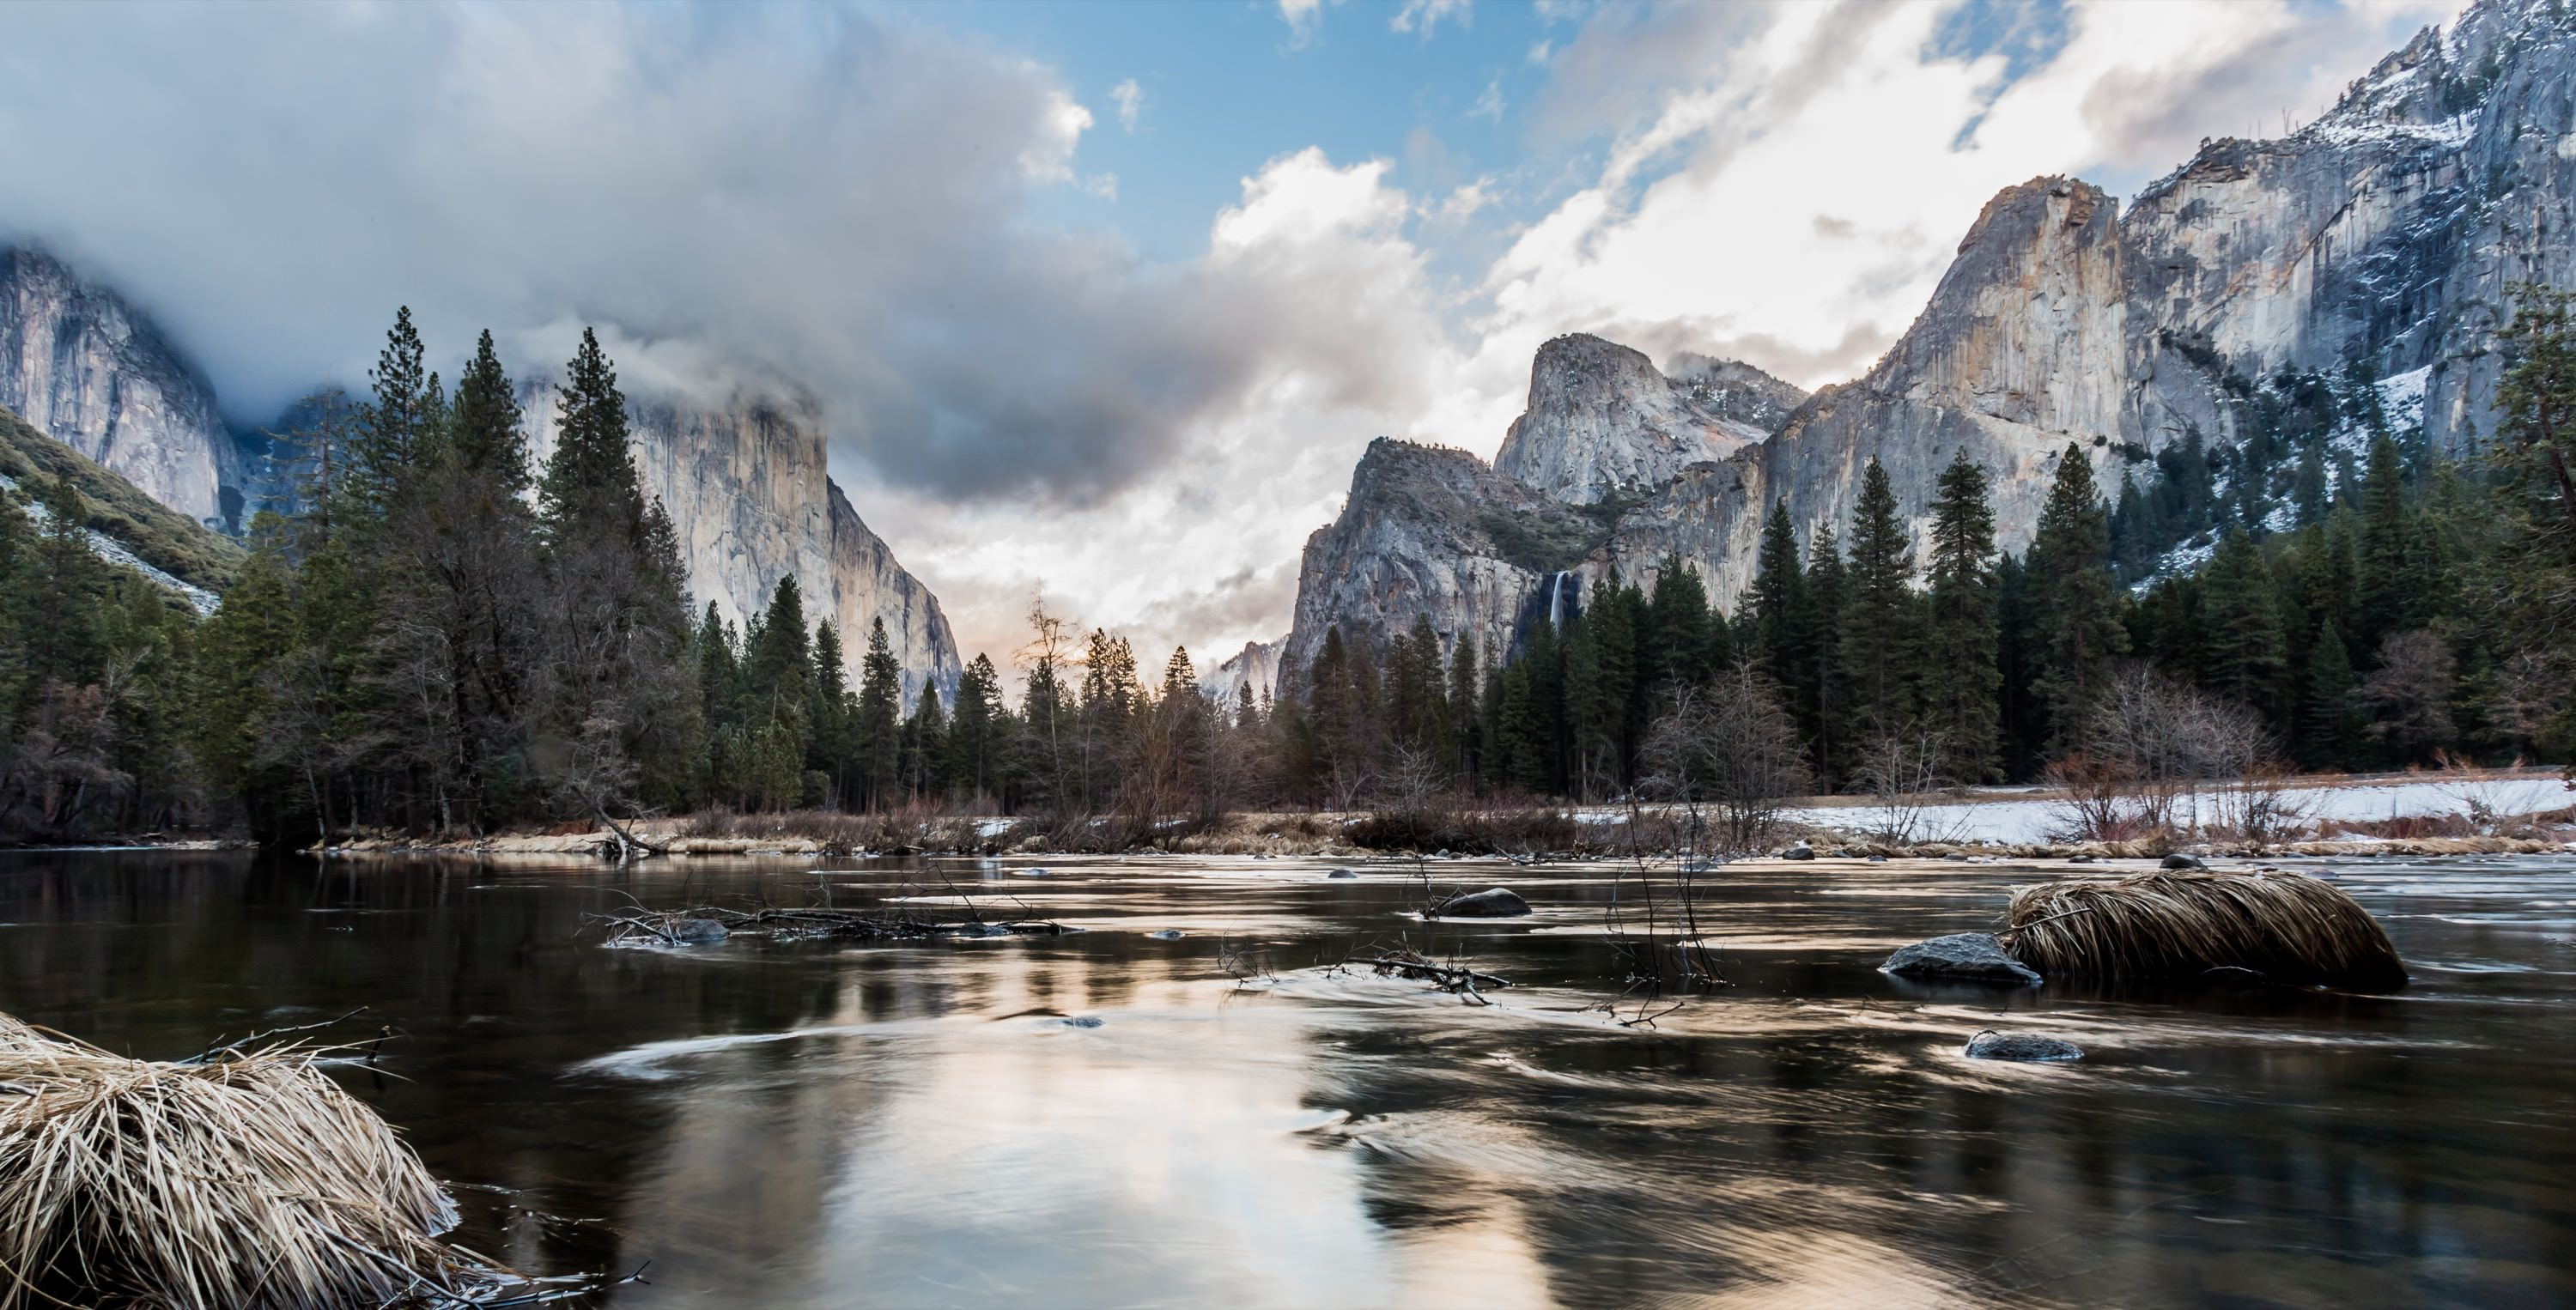 021_28_022313_NICOLE-GODDARD-PHOTOGRAPHY-YOSEMITE-NATIONAL-PARK_947C2609